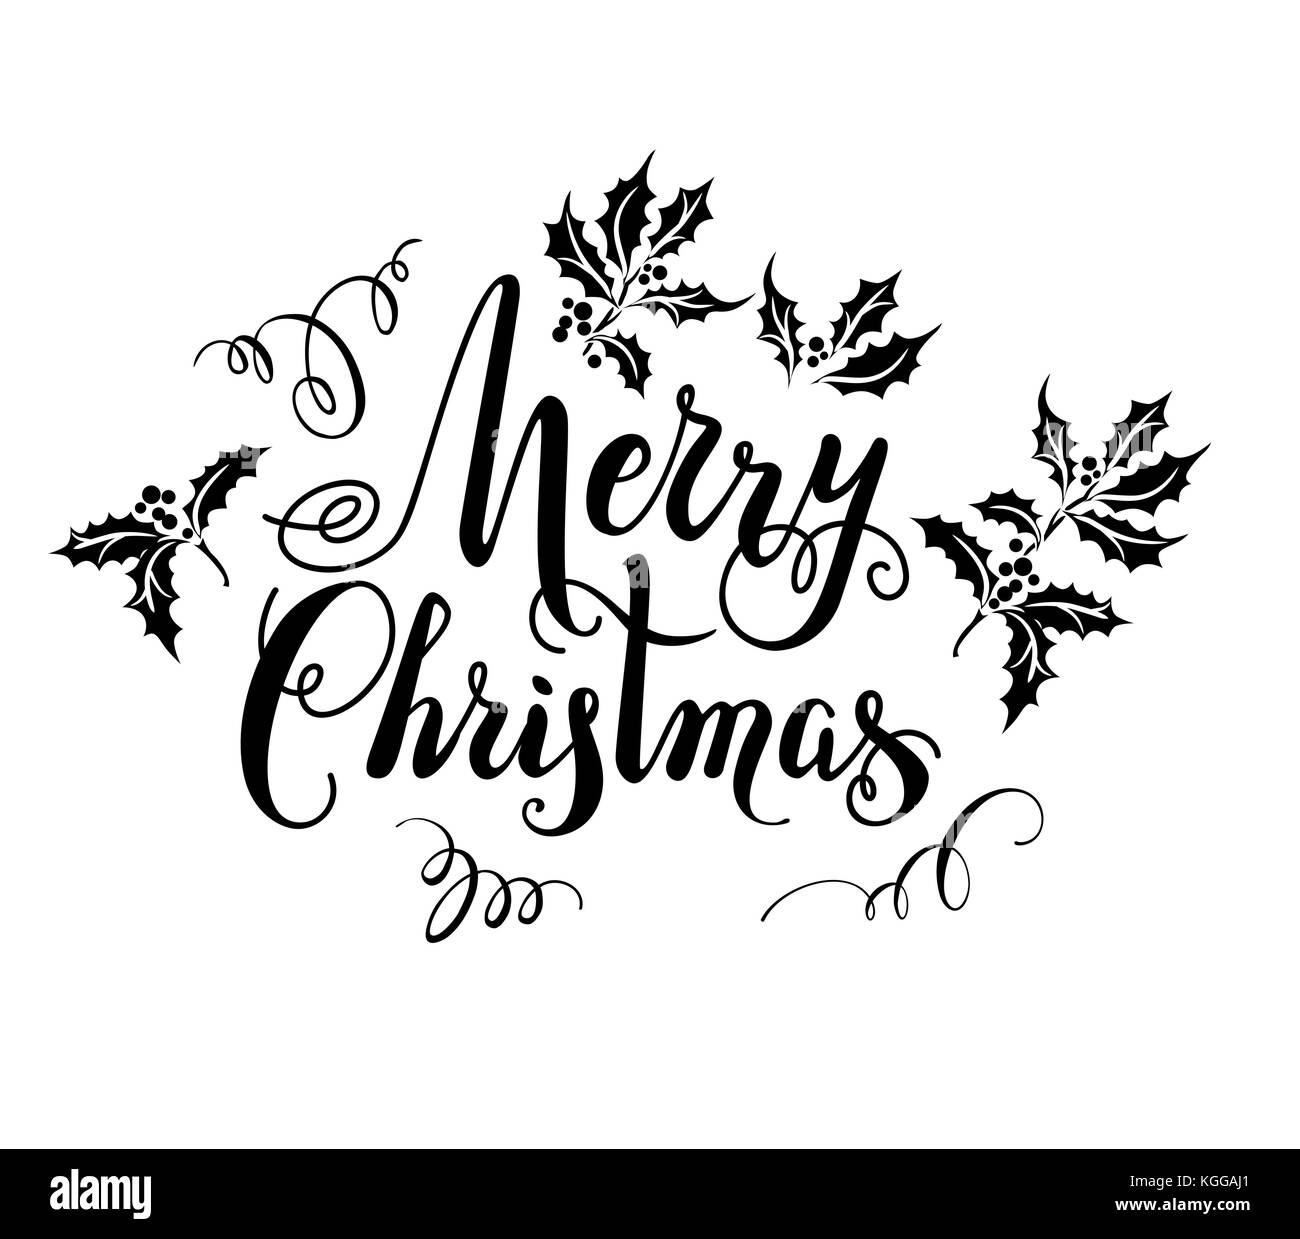 Victorian Christmas Card Black and White Stock Photos & Images - Alamy